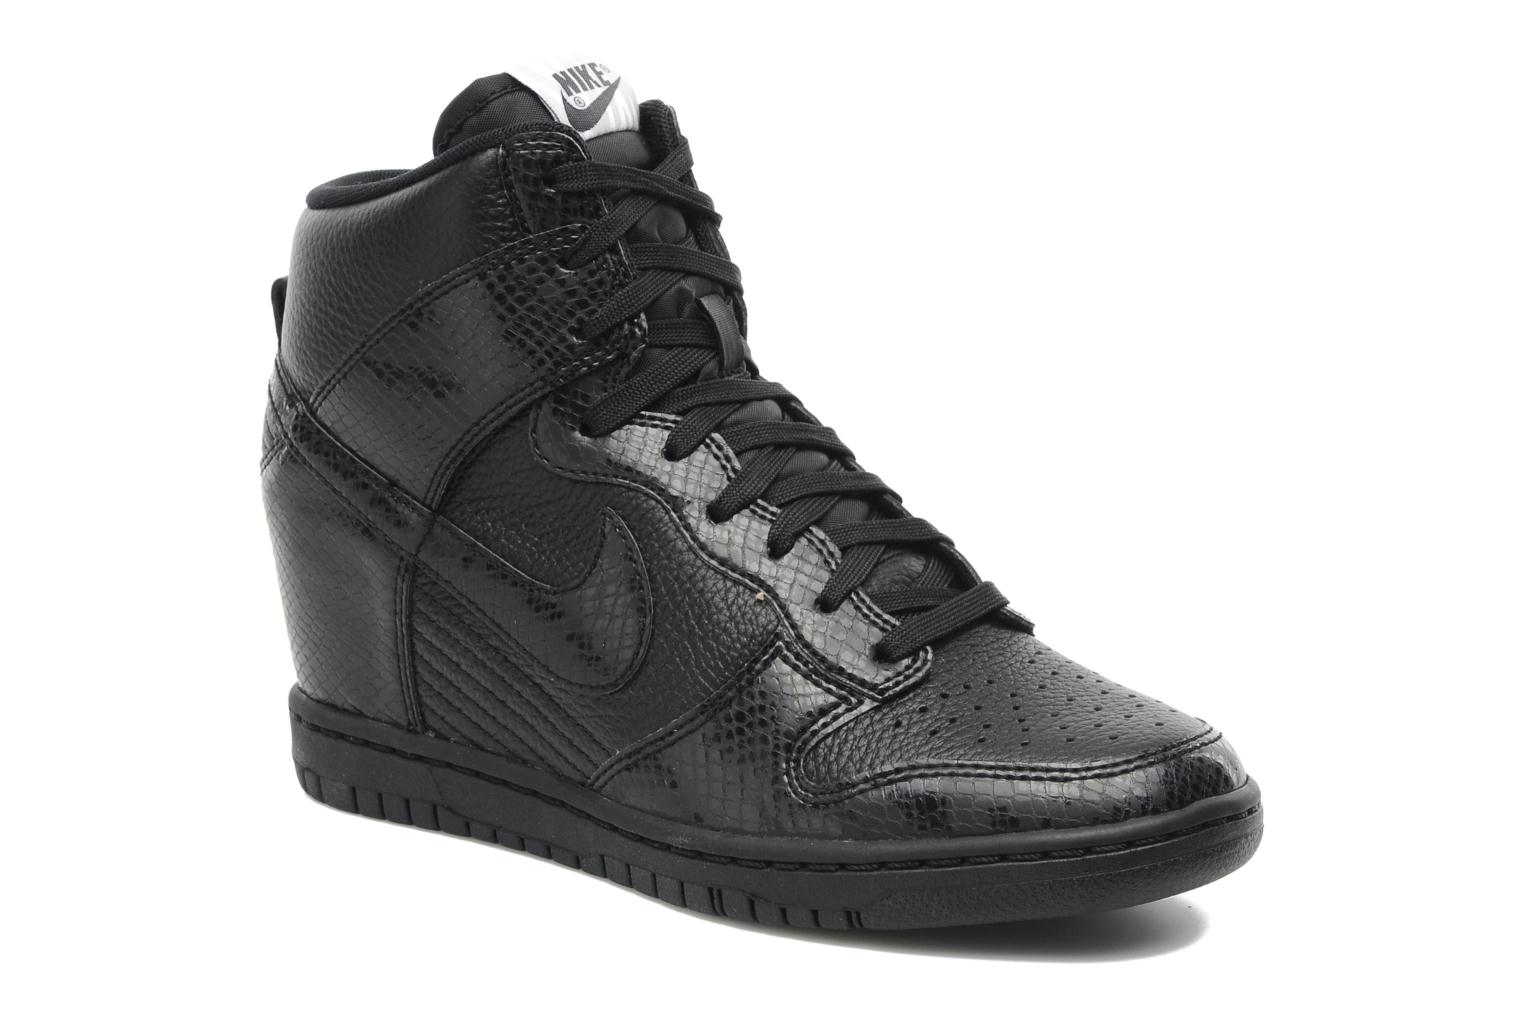 nike dunk sky high trainers in black at 182207. Black Bedroom Furniture Sets. Home Design Ideas